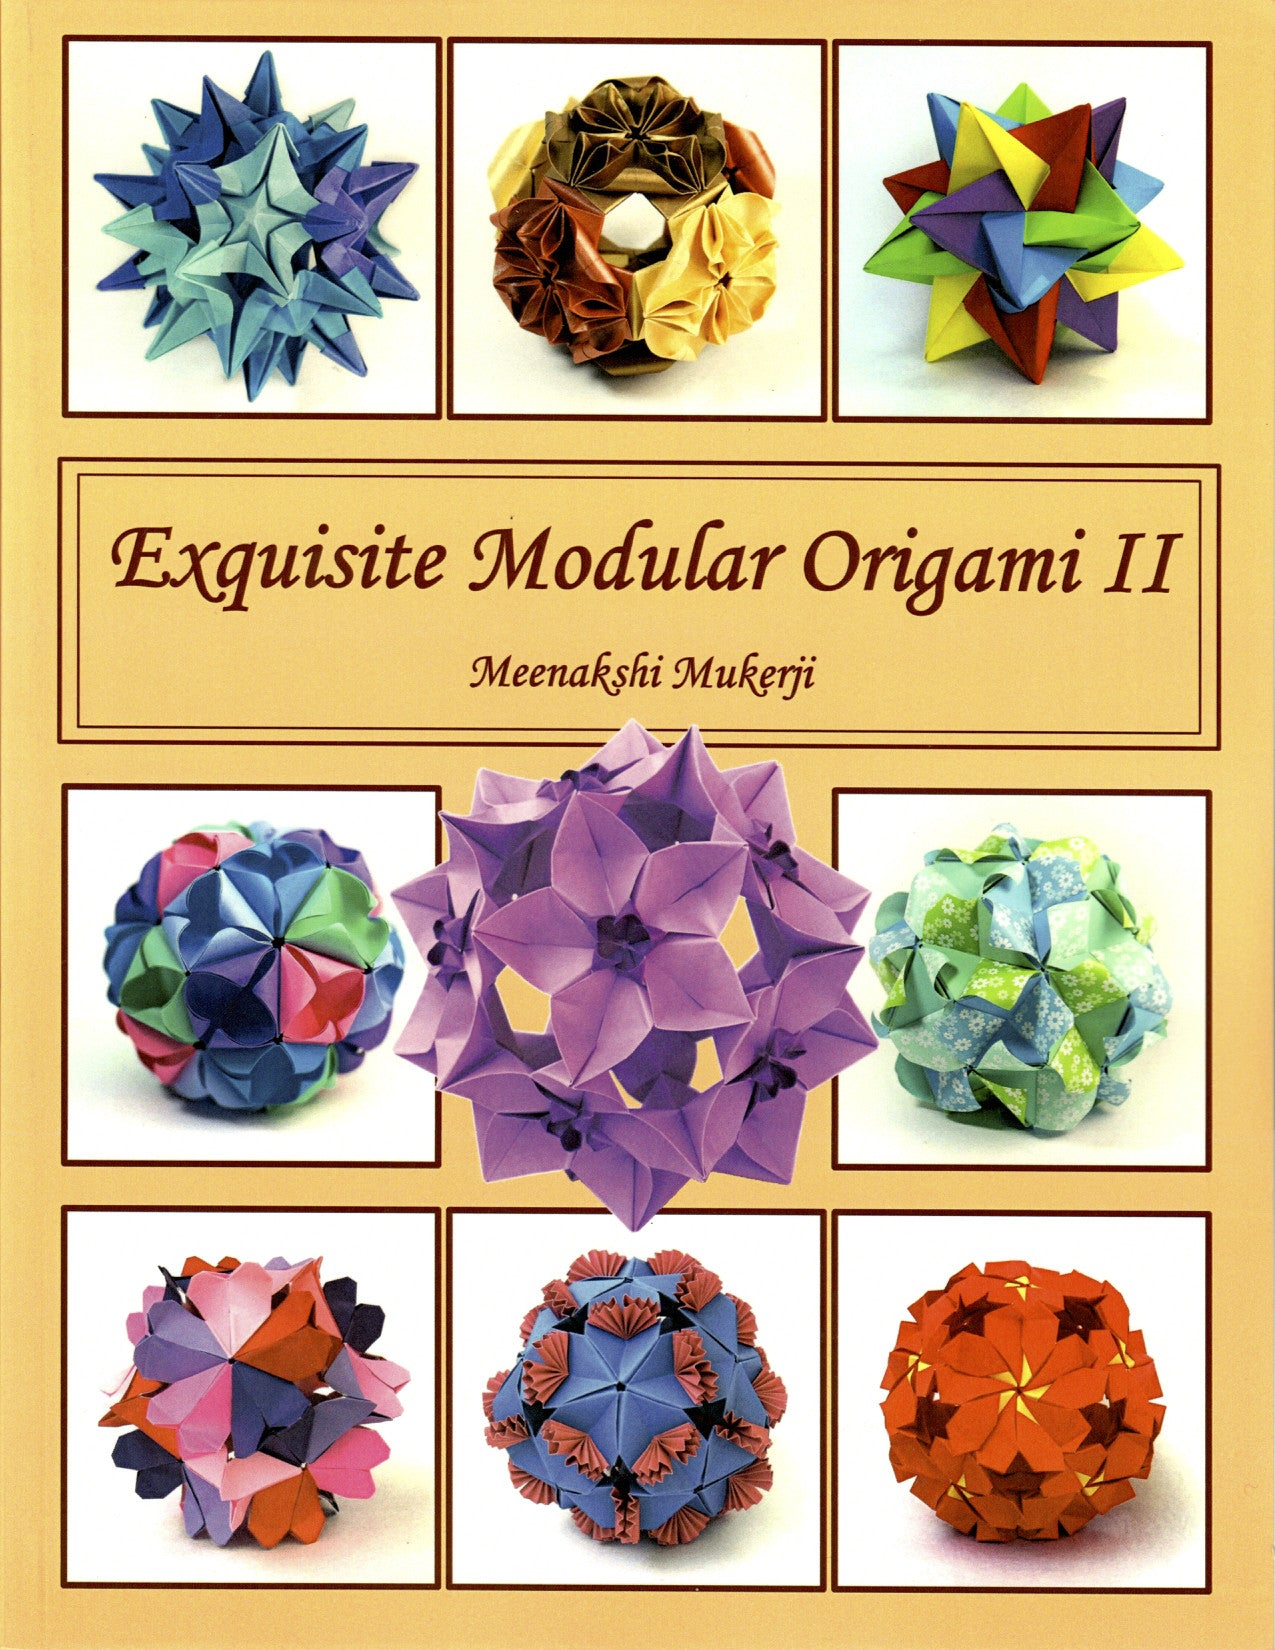 Origami Japanese Puzzle Box Instructions | LoveToKnow | 1650x1275